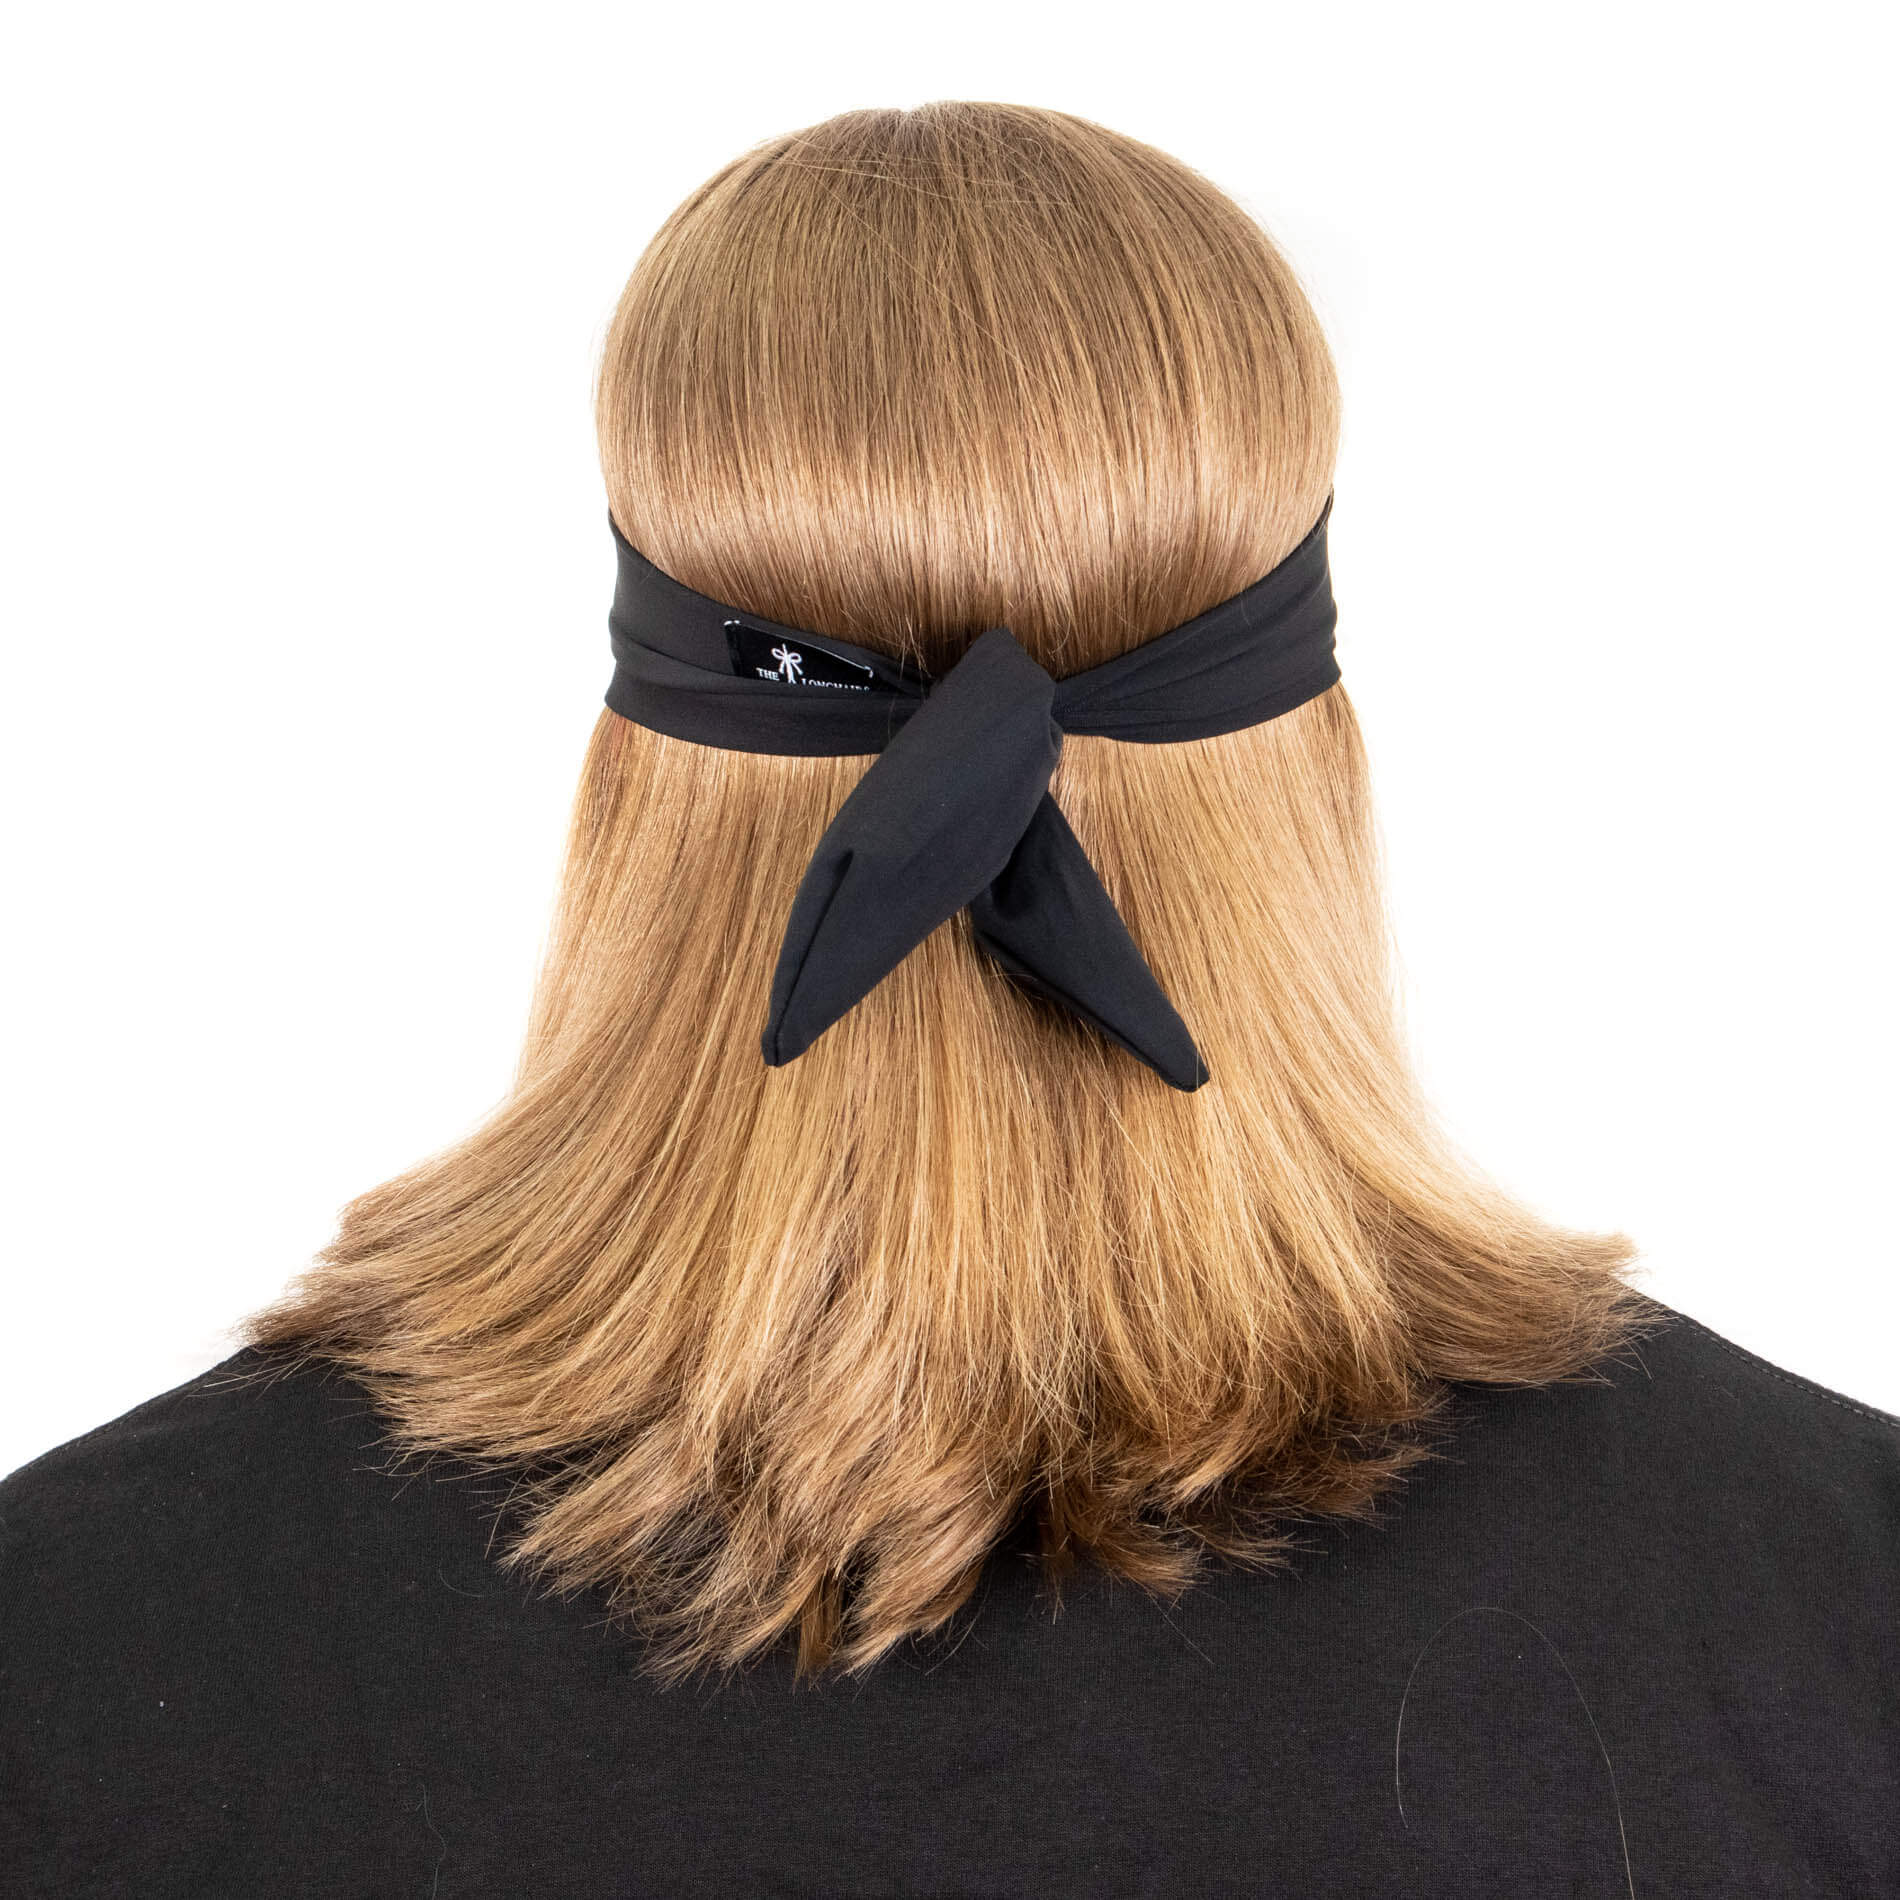 The Viper- The Longhairs Headband